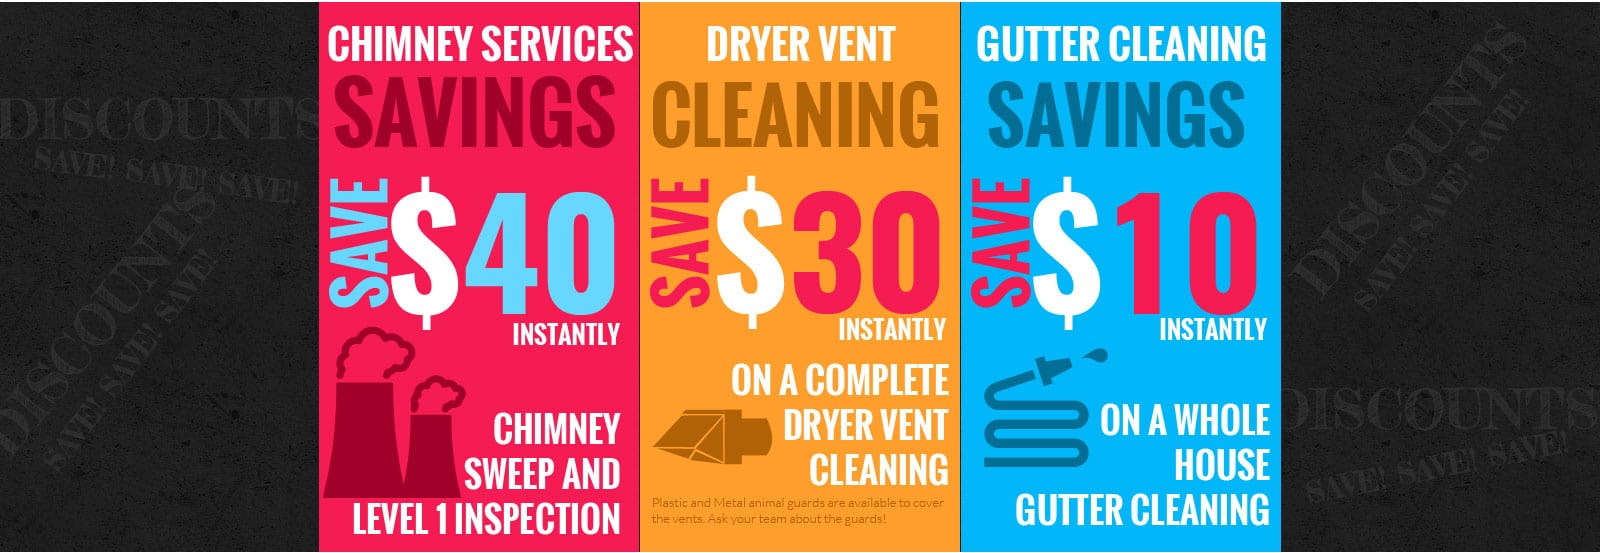 chimney cleaning northern virginia dryer vent cleaning